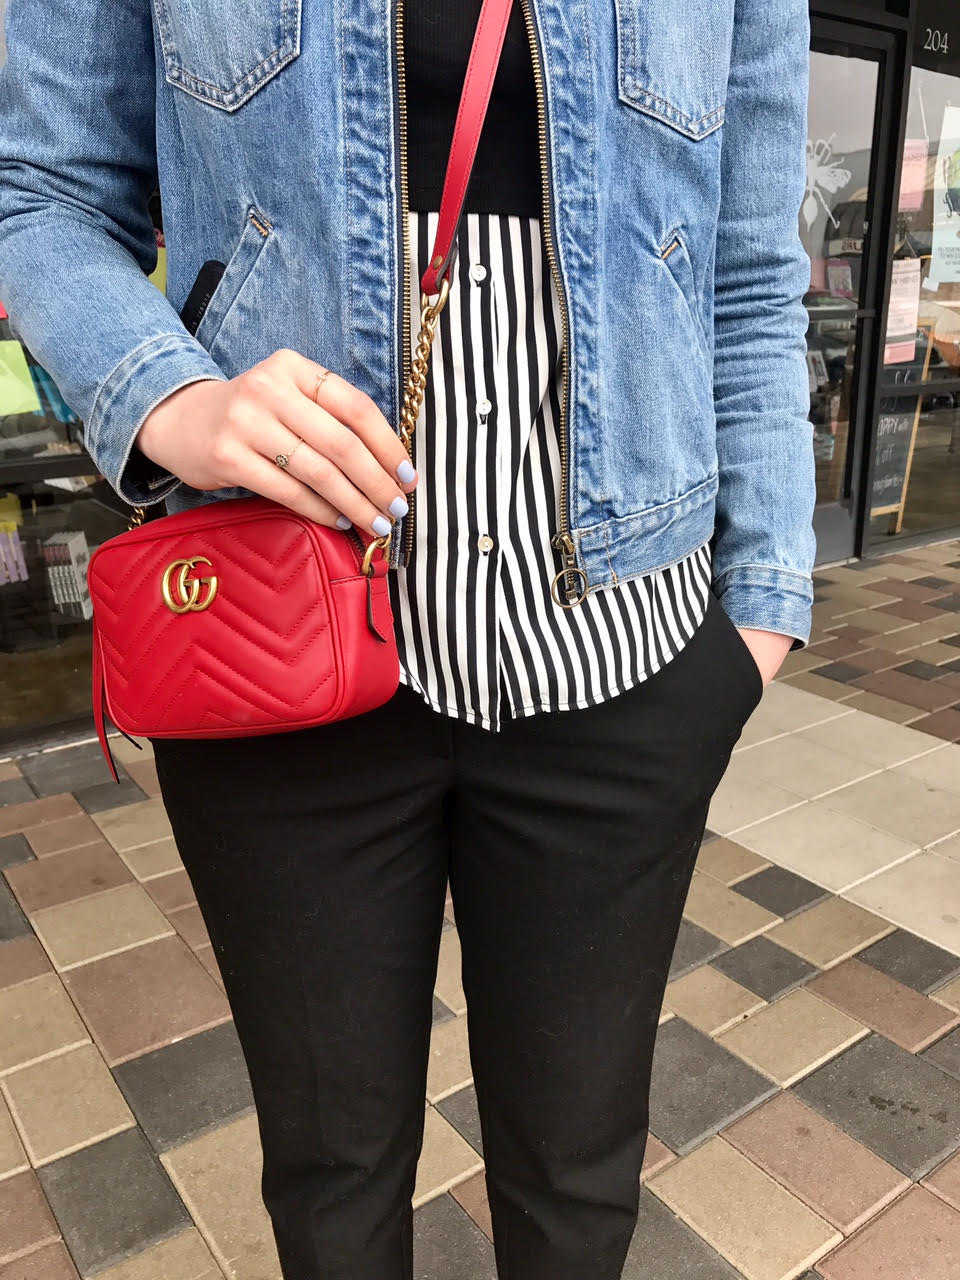 Red Gucci Marmont Mattelasse Mini